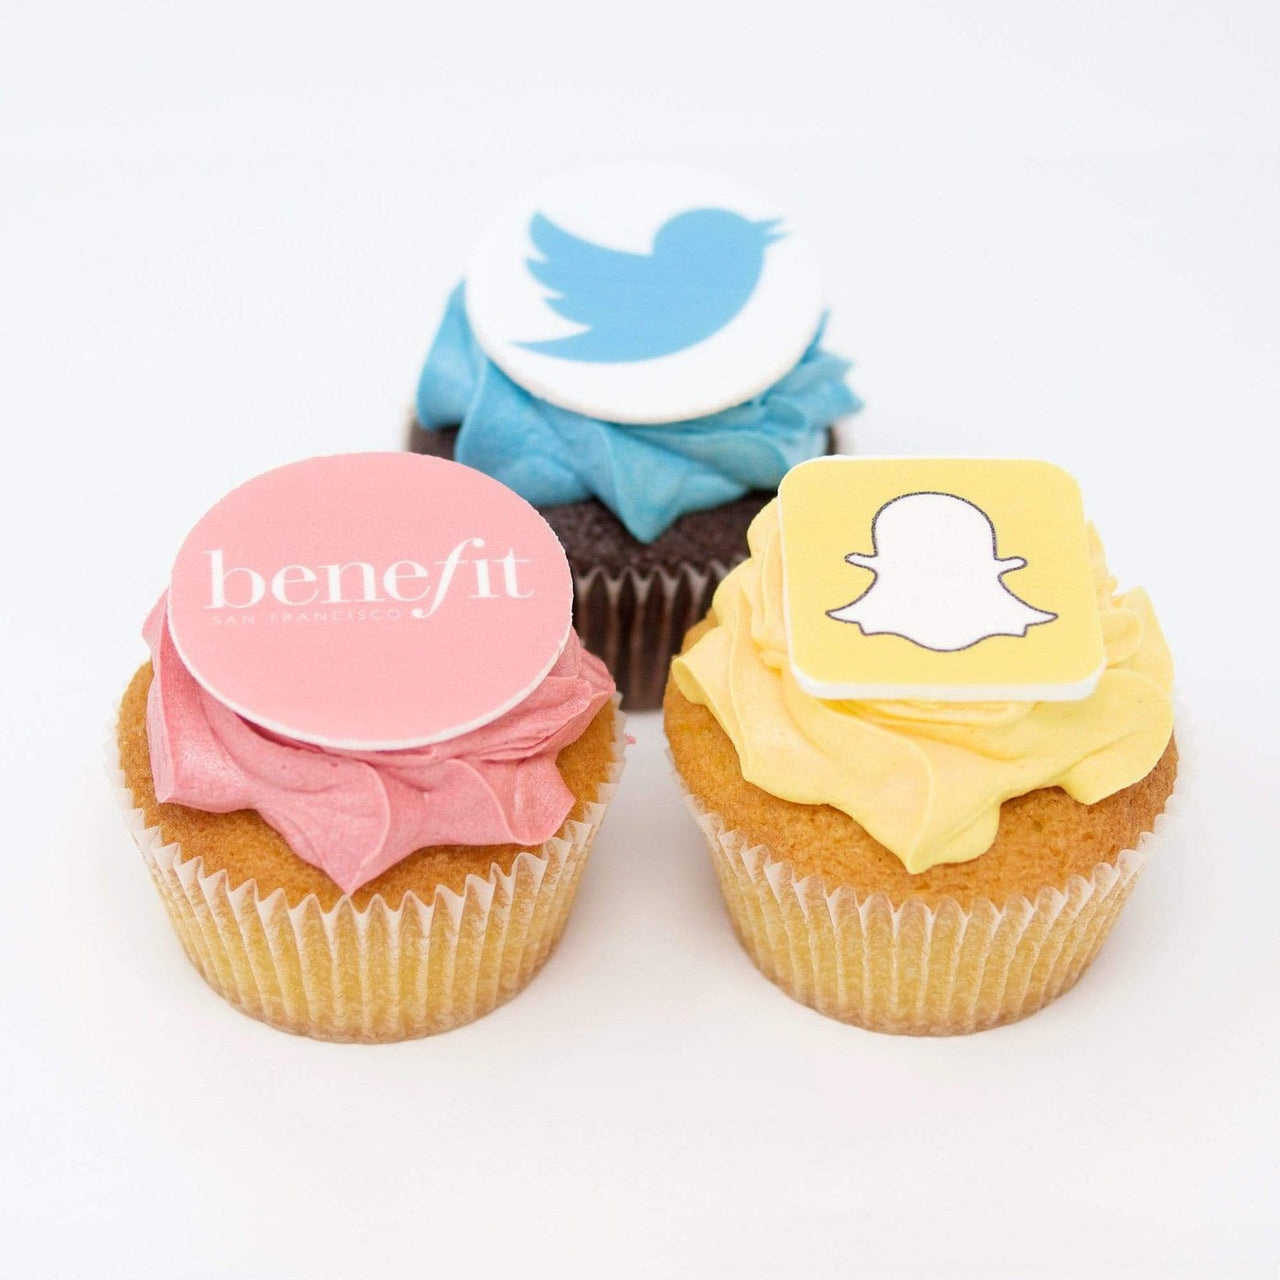 Colour Matched Cupcakes with logos